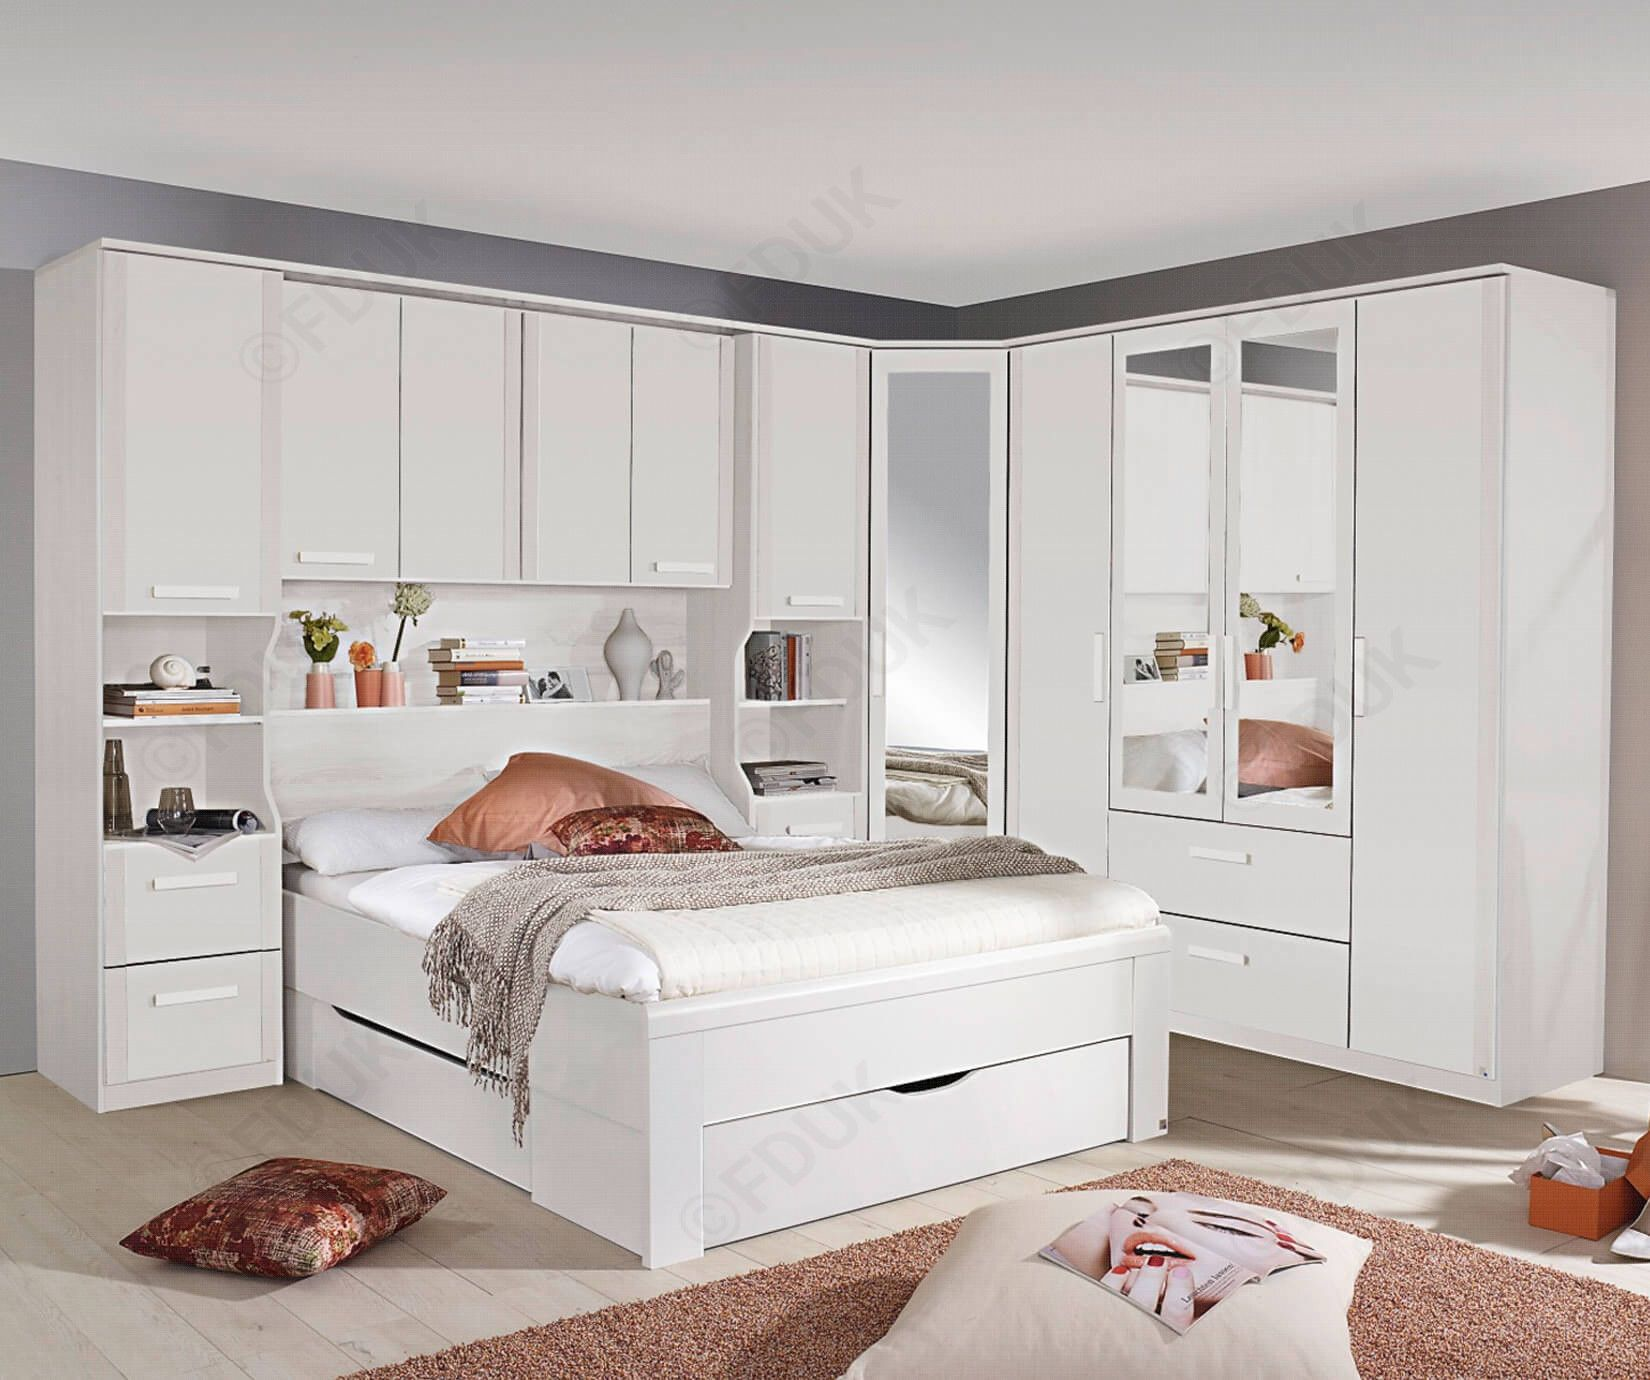 Rauch Rivera Alpine White Overbed for Beds with Wall Panel and Book Storage (W 160cm x 200cm) FDUK BEST PRICE GUARANTEE WE WILL BEAT OUR COMPETITORS PRICE! Give our sales team a call on 0116 235 77 86 and we will happily PRICE BEAT